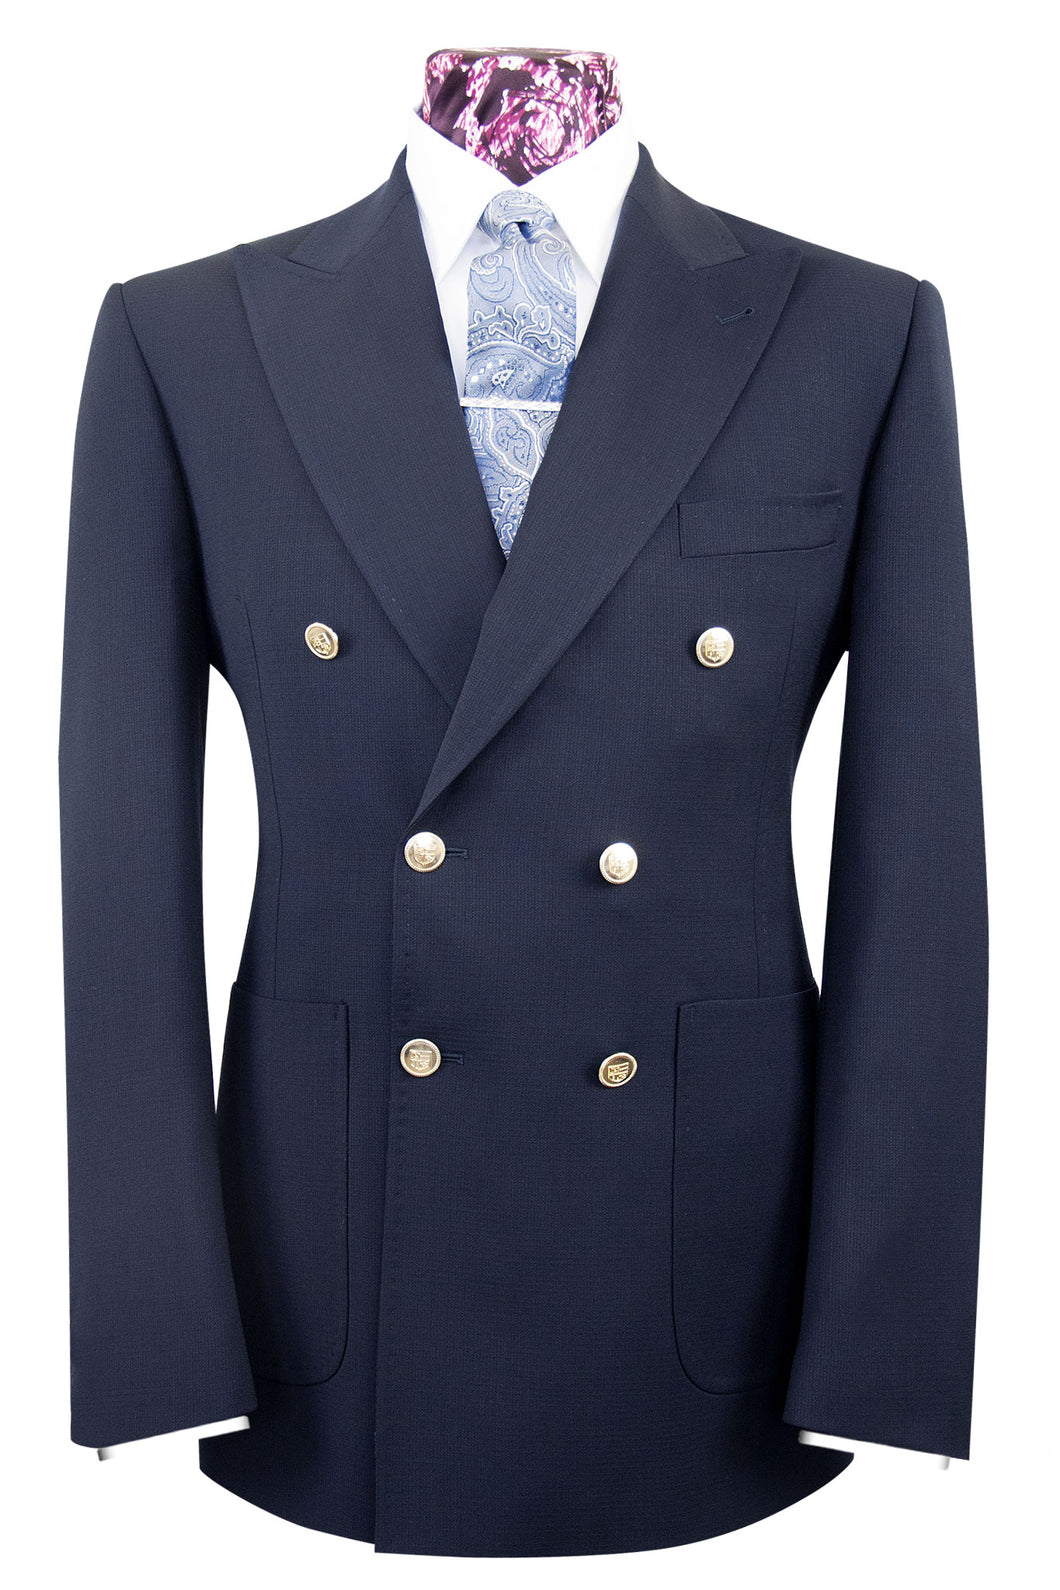 The Lockwood Midnight Navy Blazer